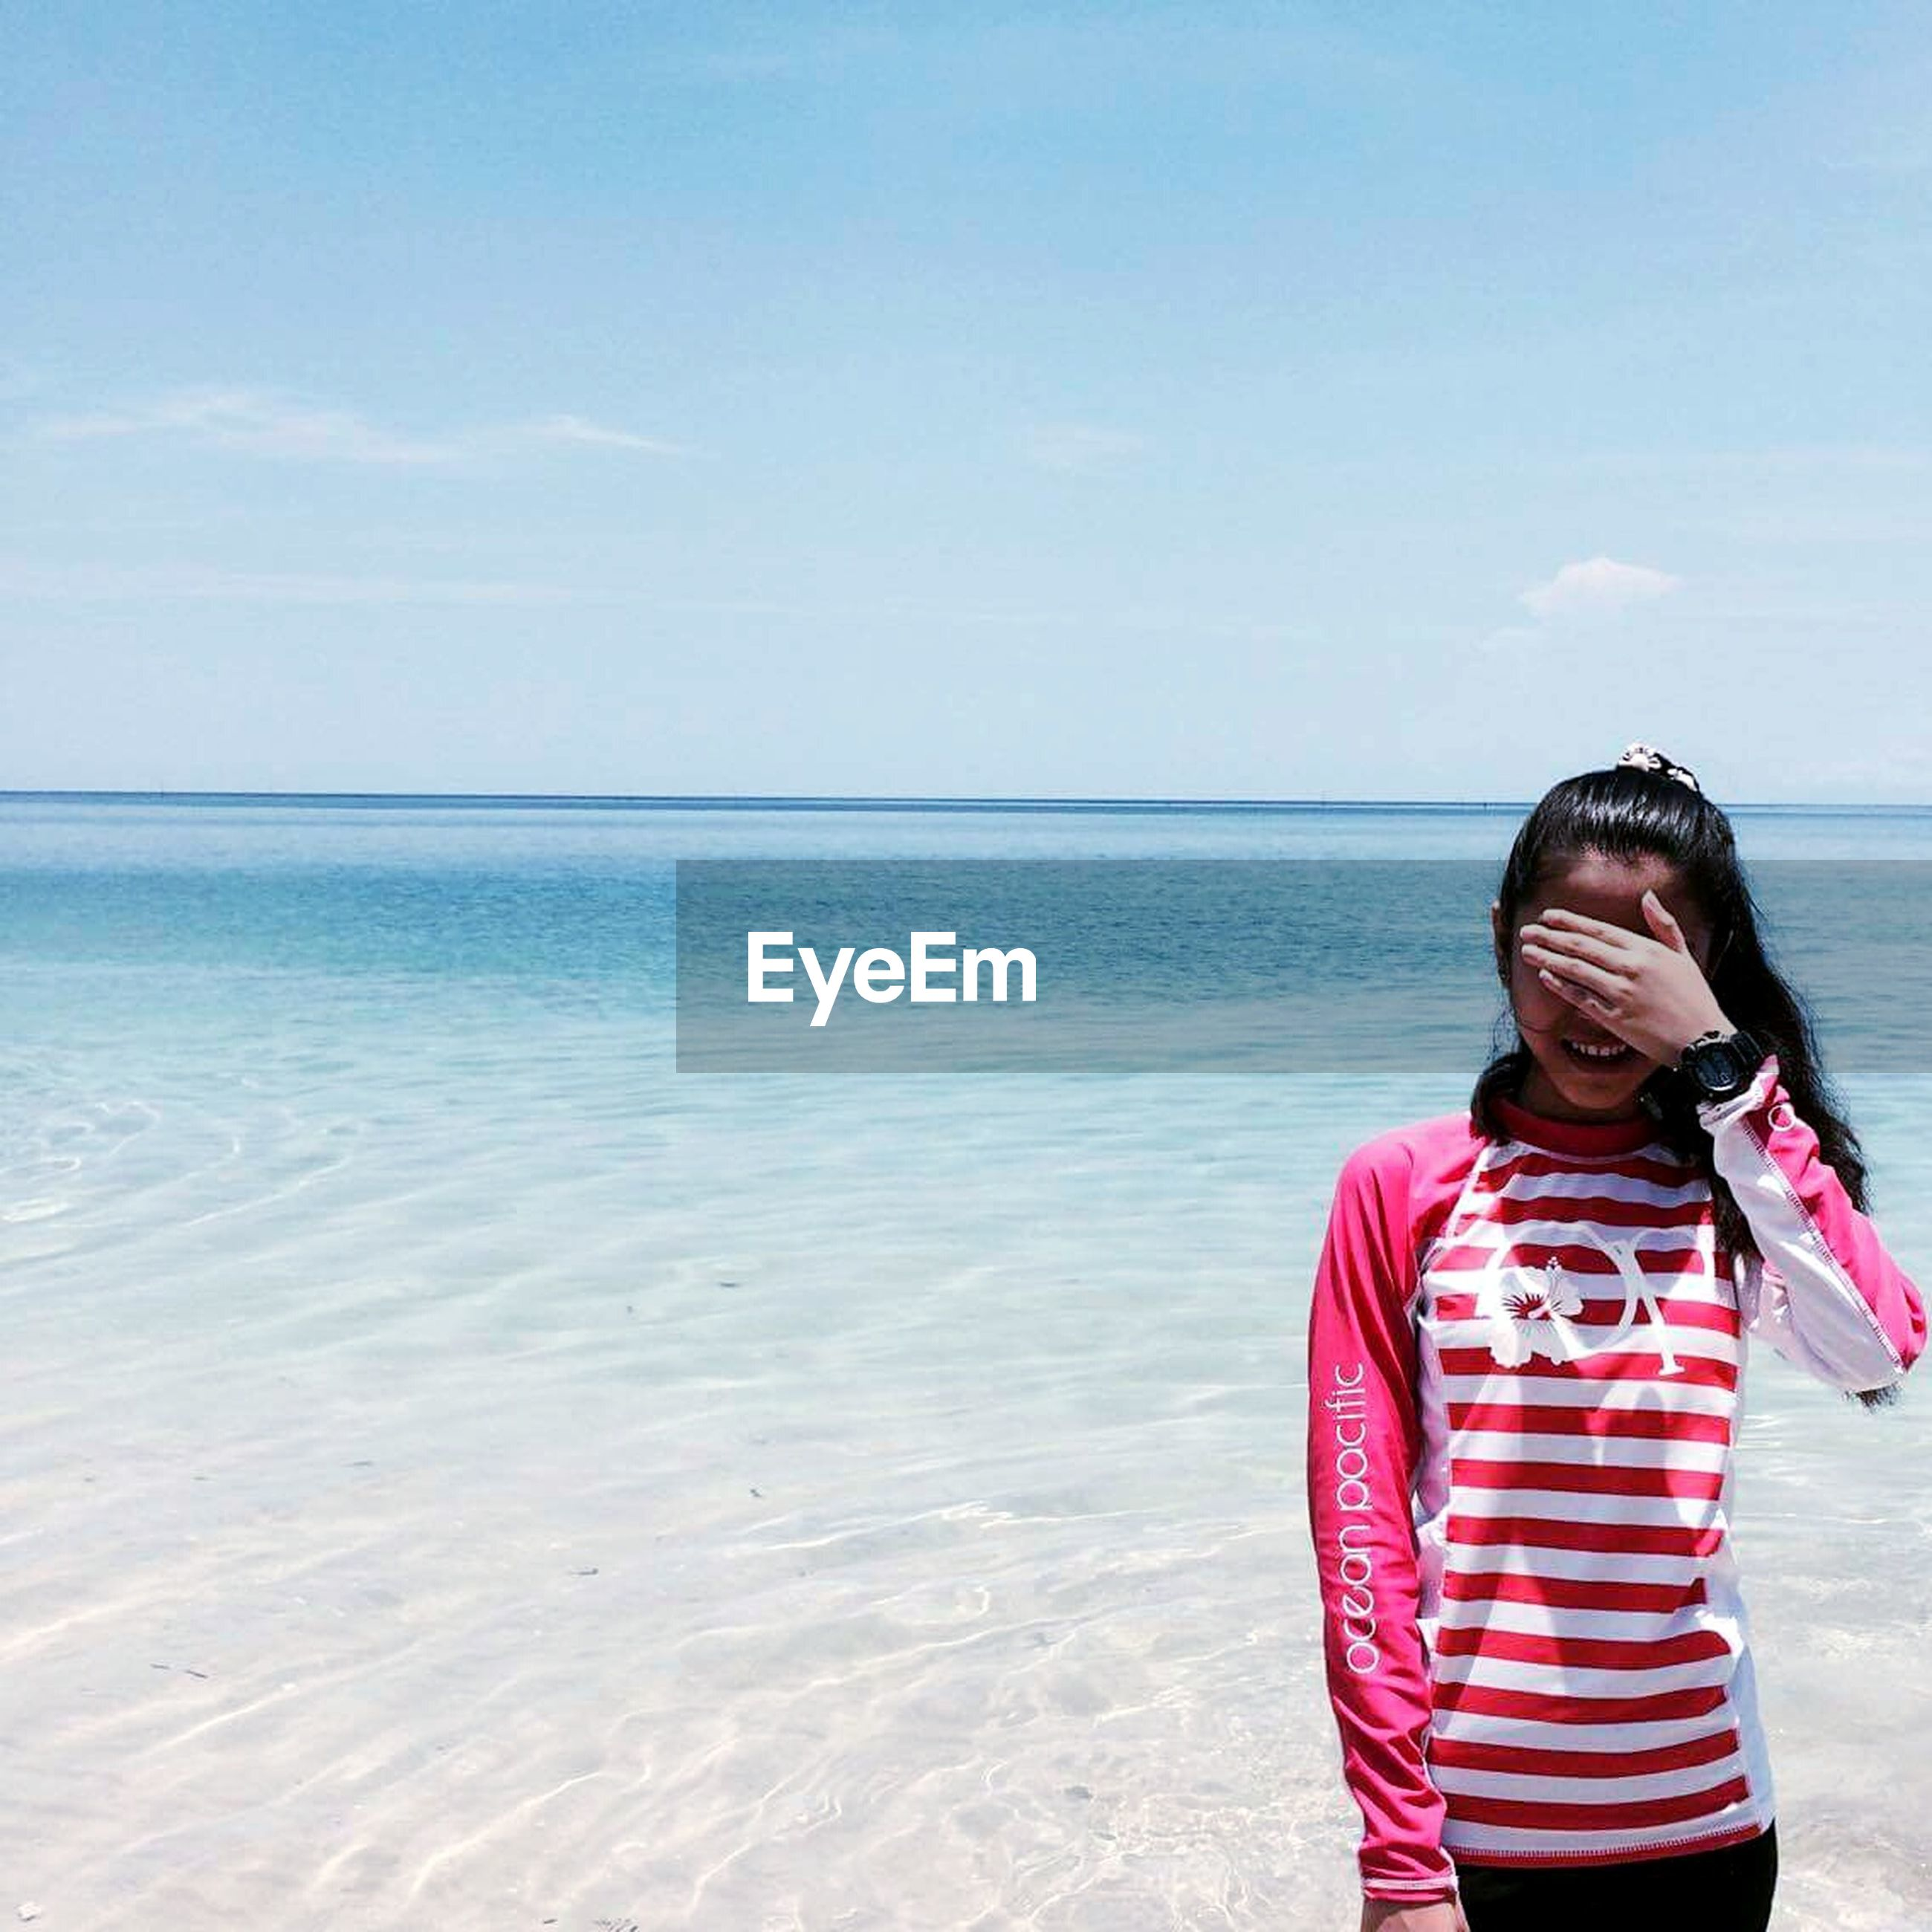 sea, one person, standing, real people, leisure activity, horizon over water, beach, sky, outdoors, lifestyles, sand, day, young women, wireless technology, scenics, young adult, water, nature, people, adult